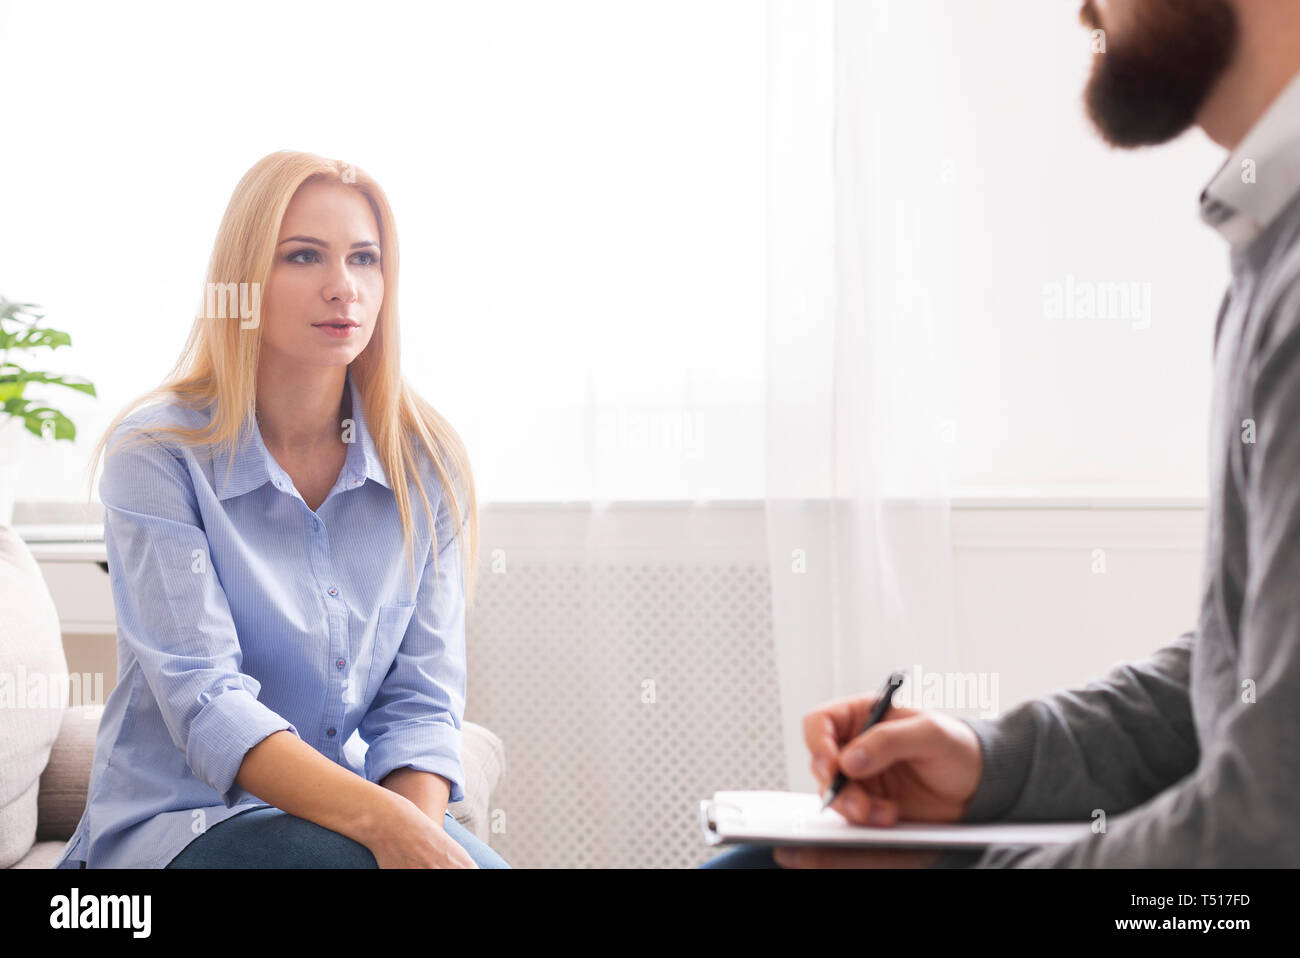 Motivational speaker encouraging client to do personal challenges - Stock Image